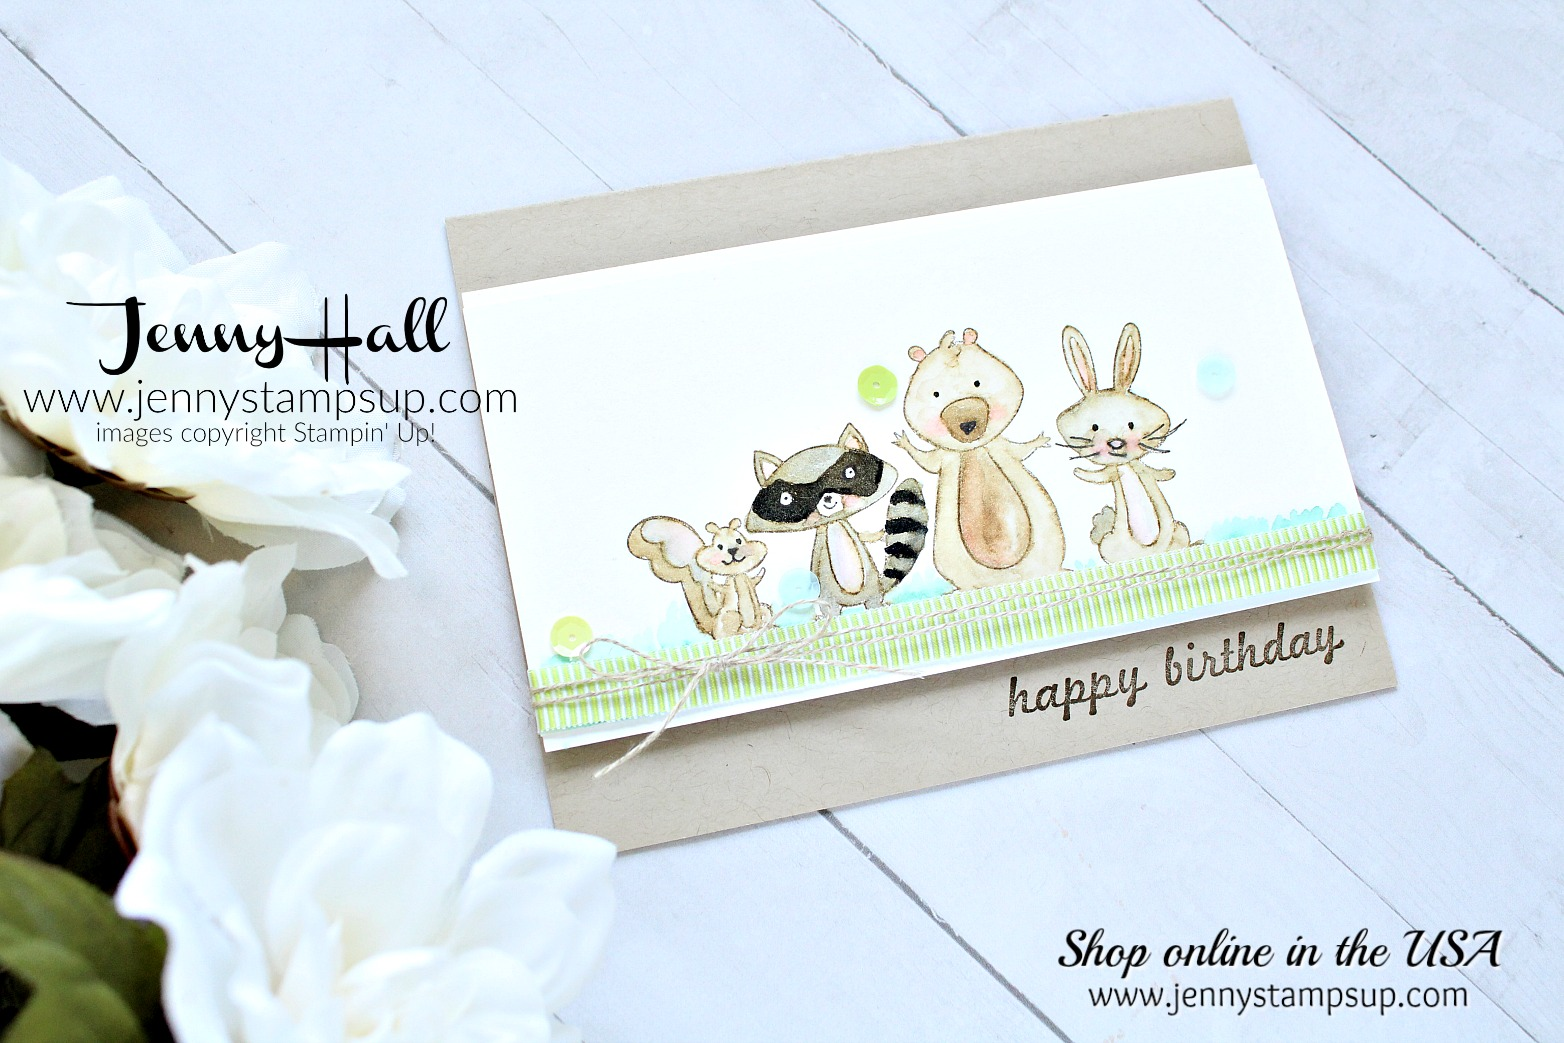 We Must Celebrate friend card created by Jenny Hall at www.jennystampsup.com for #cardmaking #scrapbooking #stamping #stampinup #watercolorpainting #handmadecard #wemustcelebrate #jennyhall #jennyhalldesign #jennystampsup #videotutorial #youtuber #craftyyoutuber #cascards #cleanandsimplecards #rubberstamp lemonlimetwist #crafts #diy